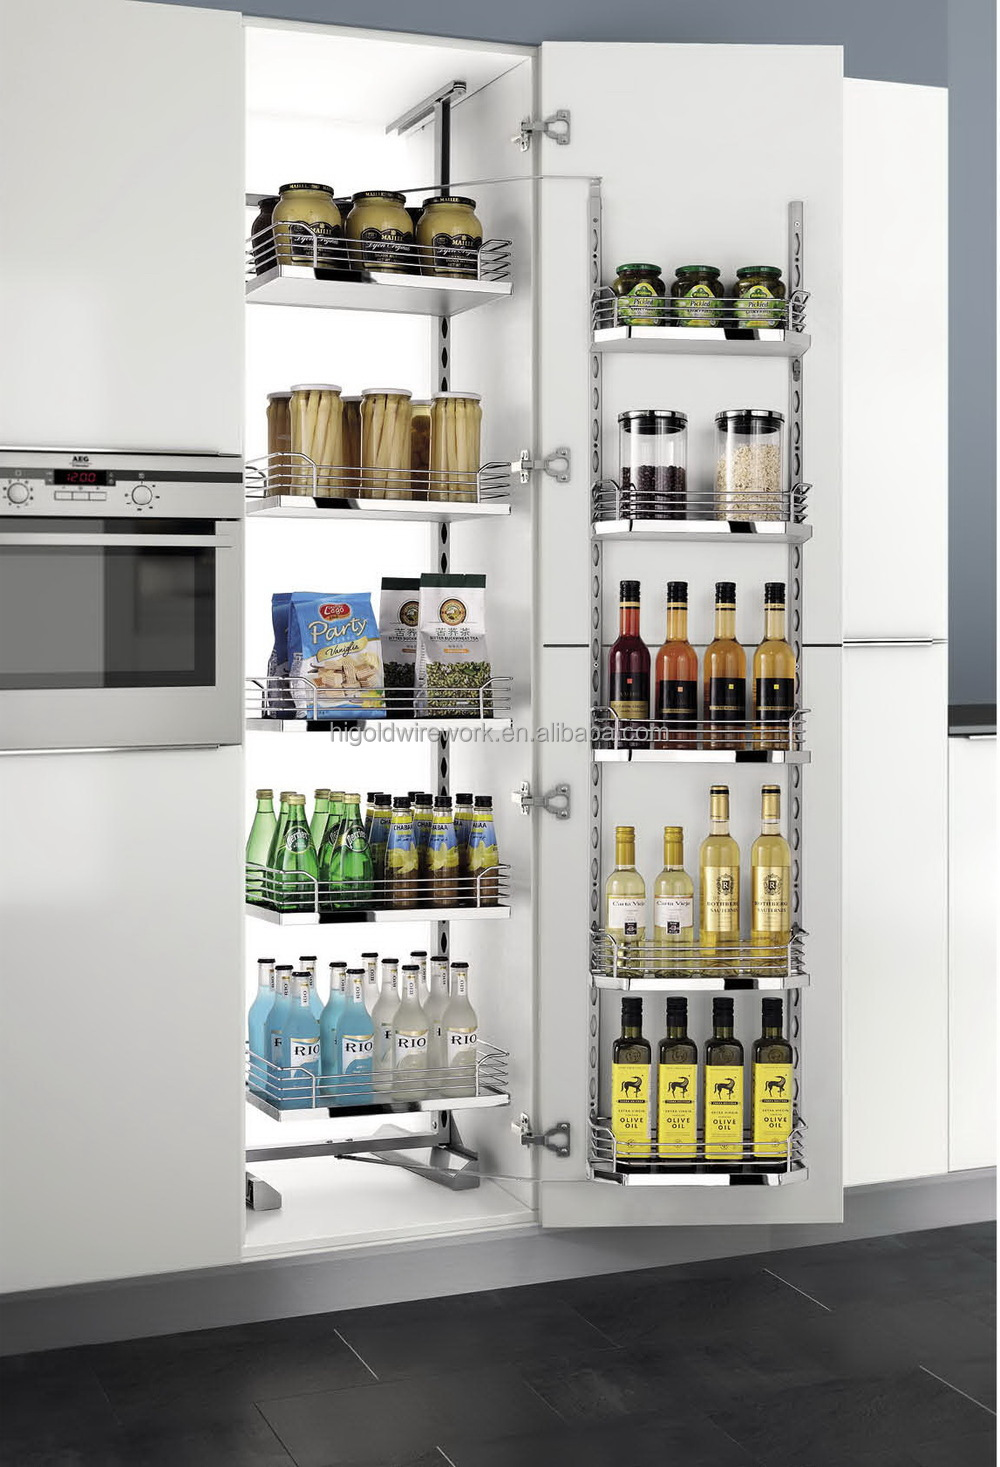 kitchen cabinet organizer pull out drawers with Higold Tandem Pantry Unit Pull Out 60317602194 on Higold Tandem Pantry Unit Pull Out 60317602194 also 6345742 moreover Ws 94427 together with 10 Laundry Room Storage Ideas further 191573532850.